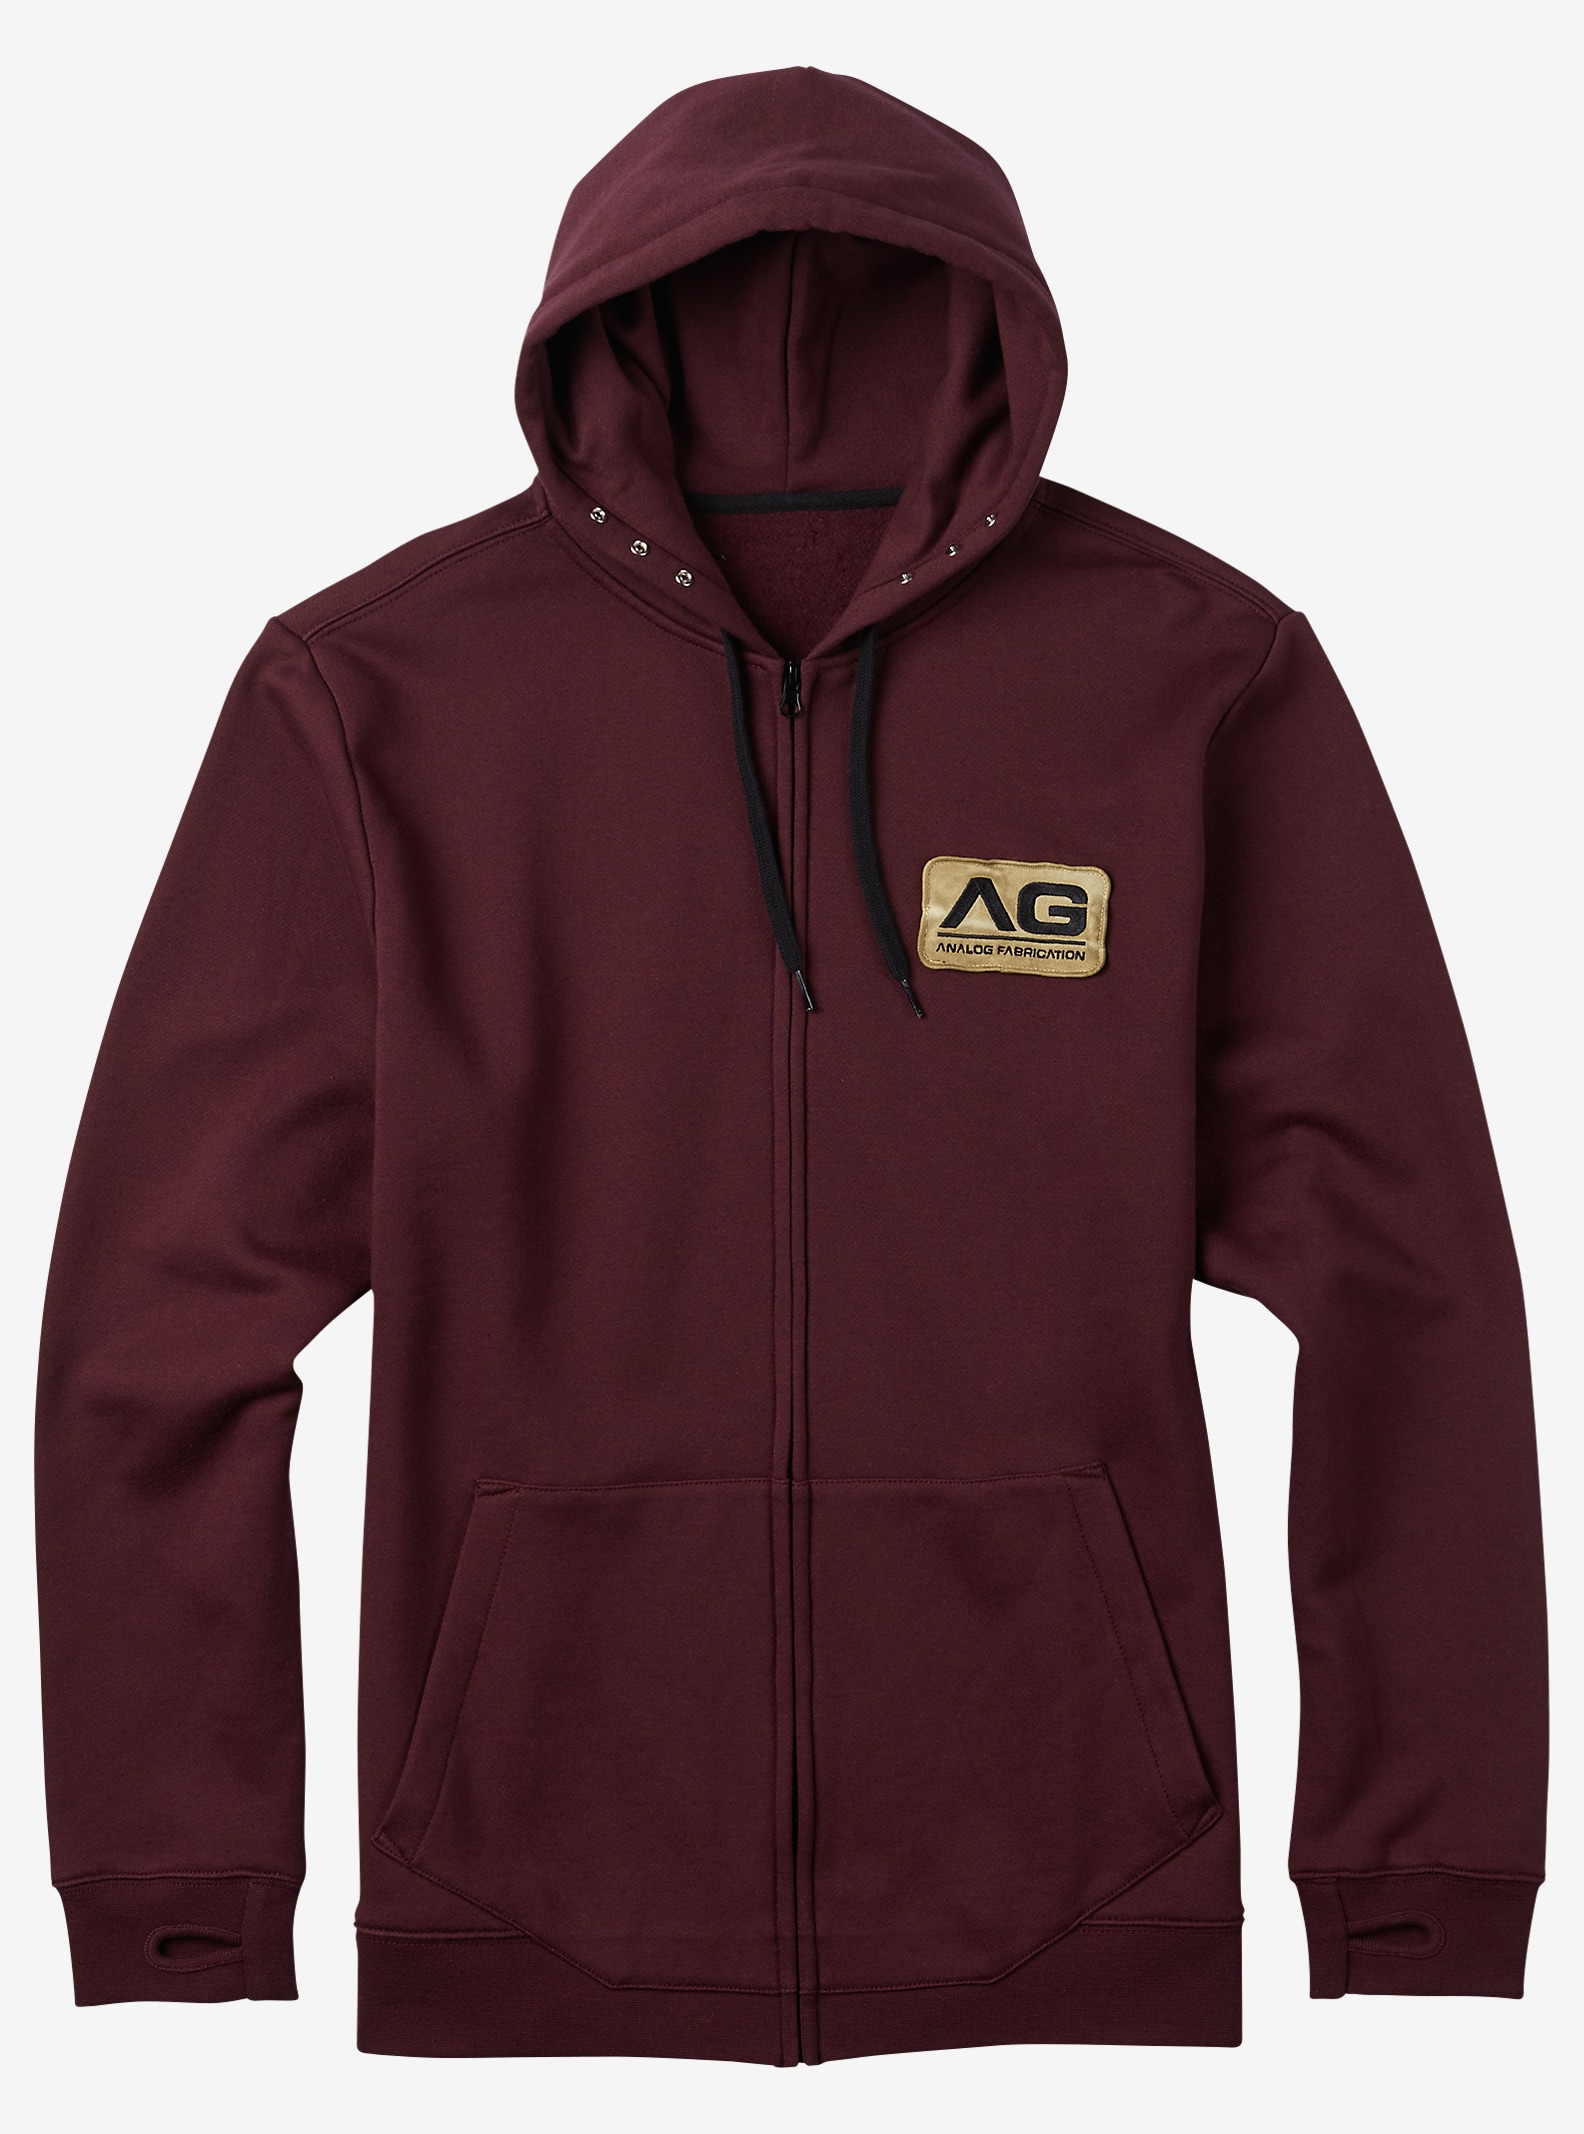 Analog Mobilize Full-Zip Hoodie shown in Deep Purple